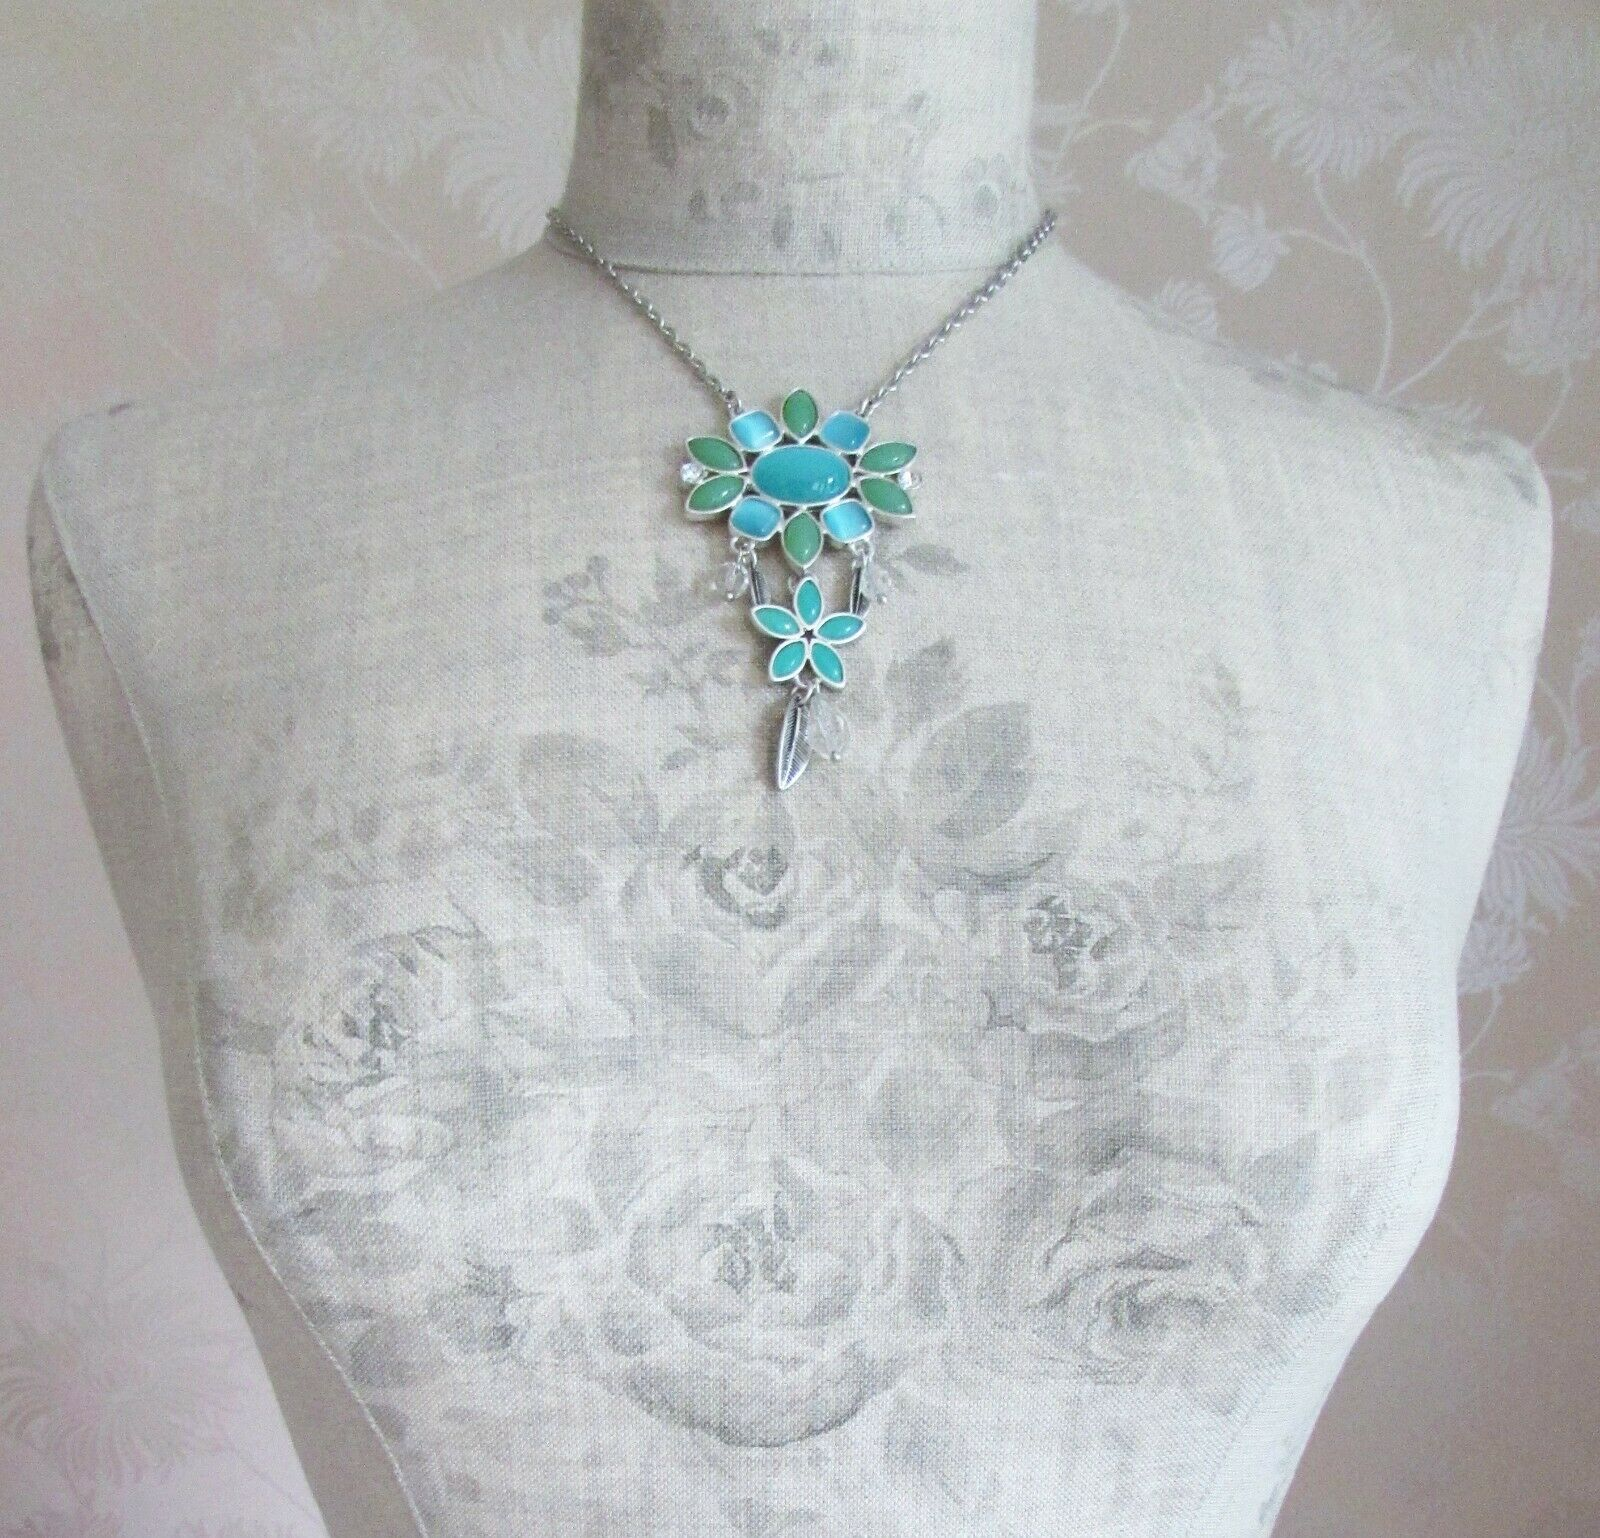 BOHM - Glass Petals Flower Pendant Necklace - Oxidised Silver/Aqua Blue BNWT